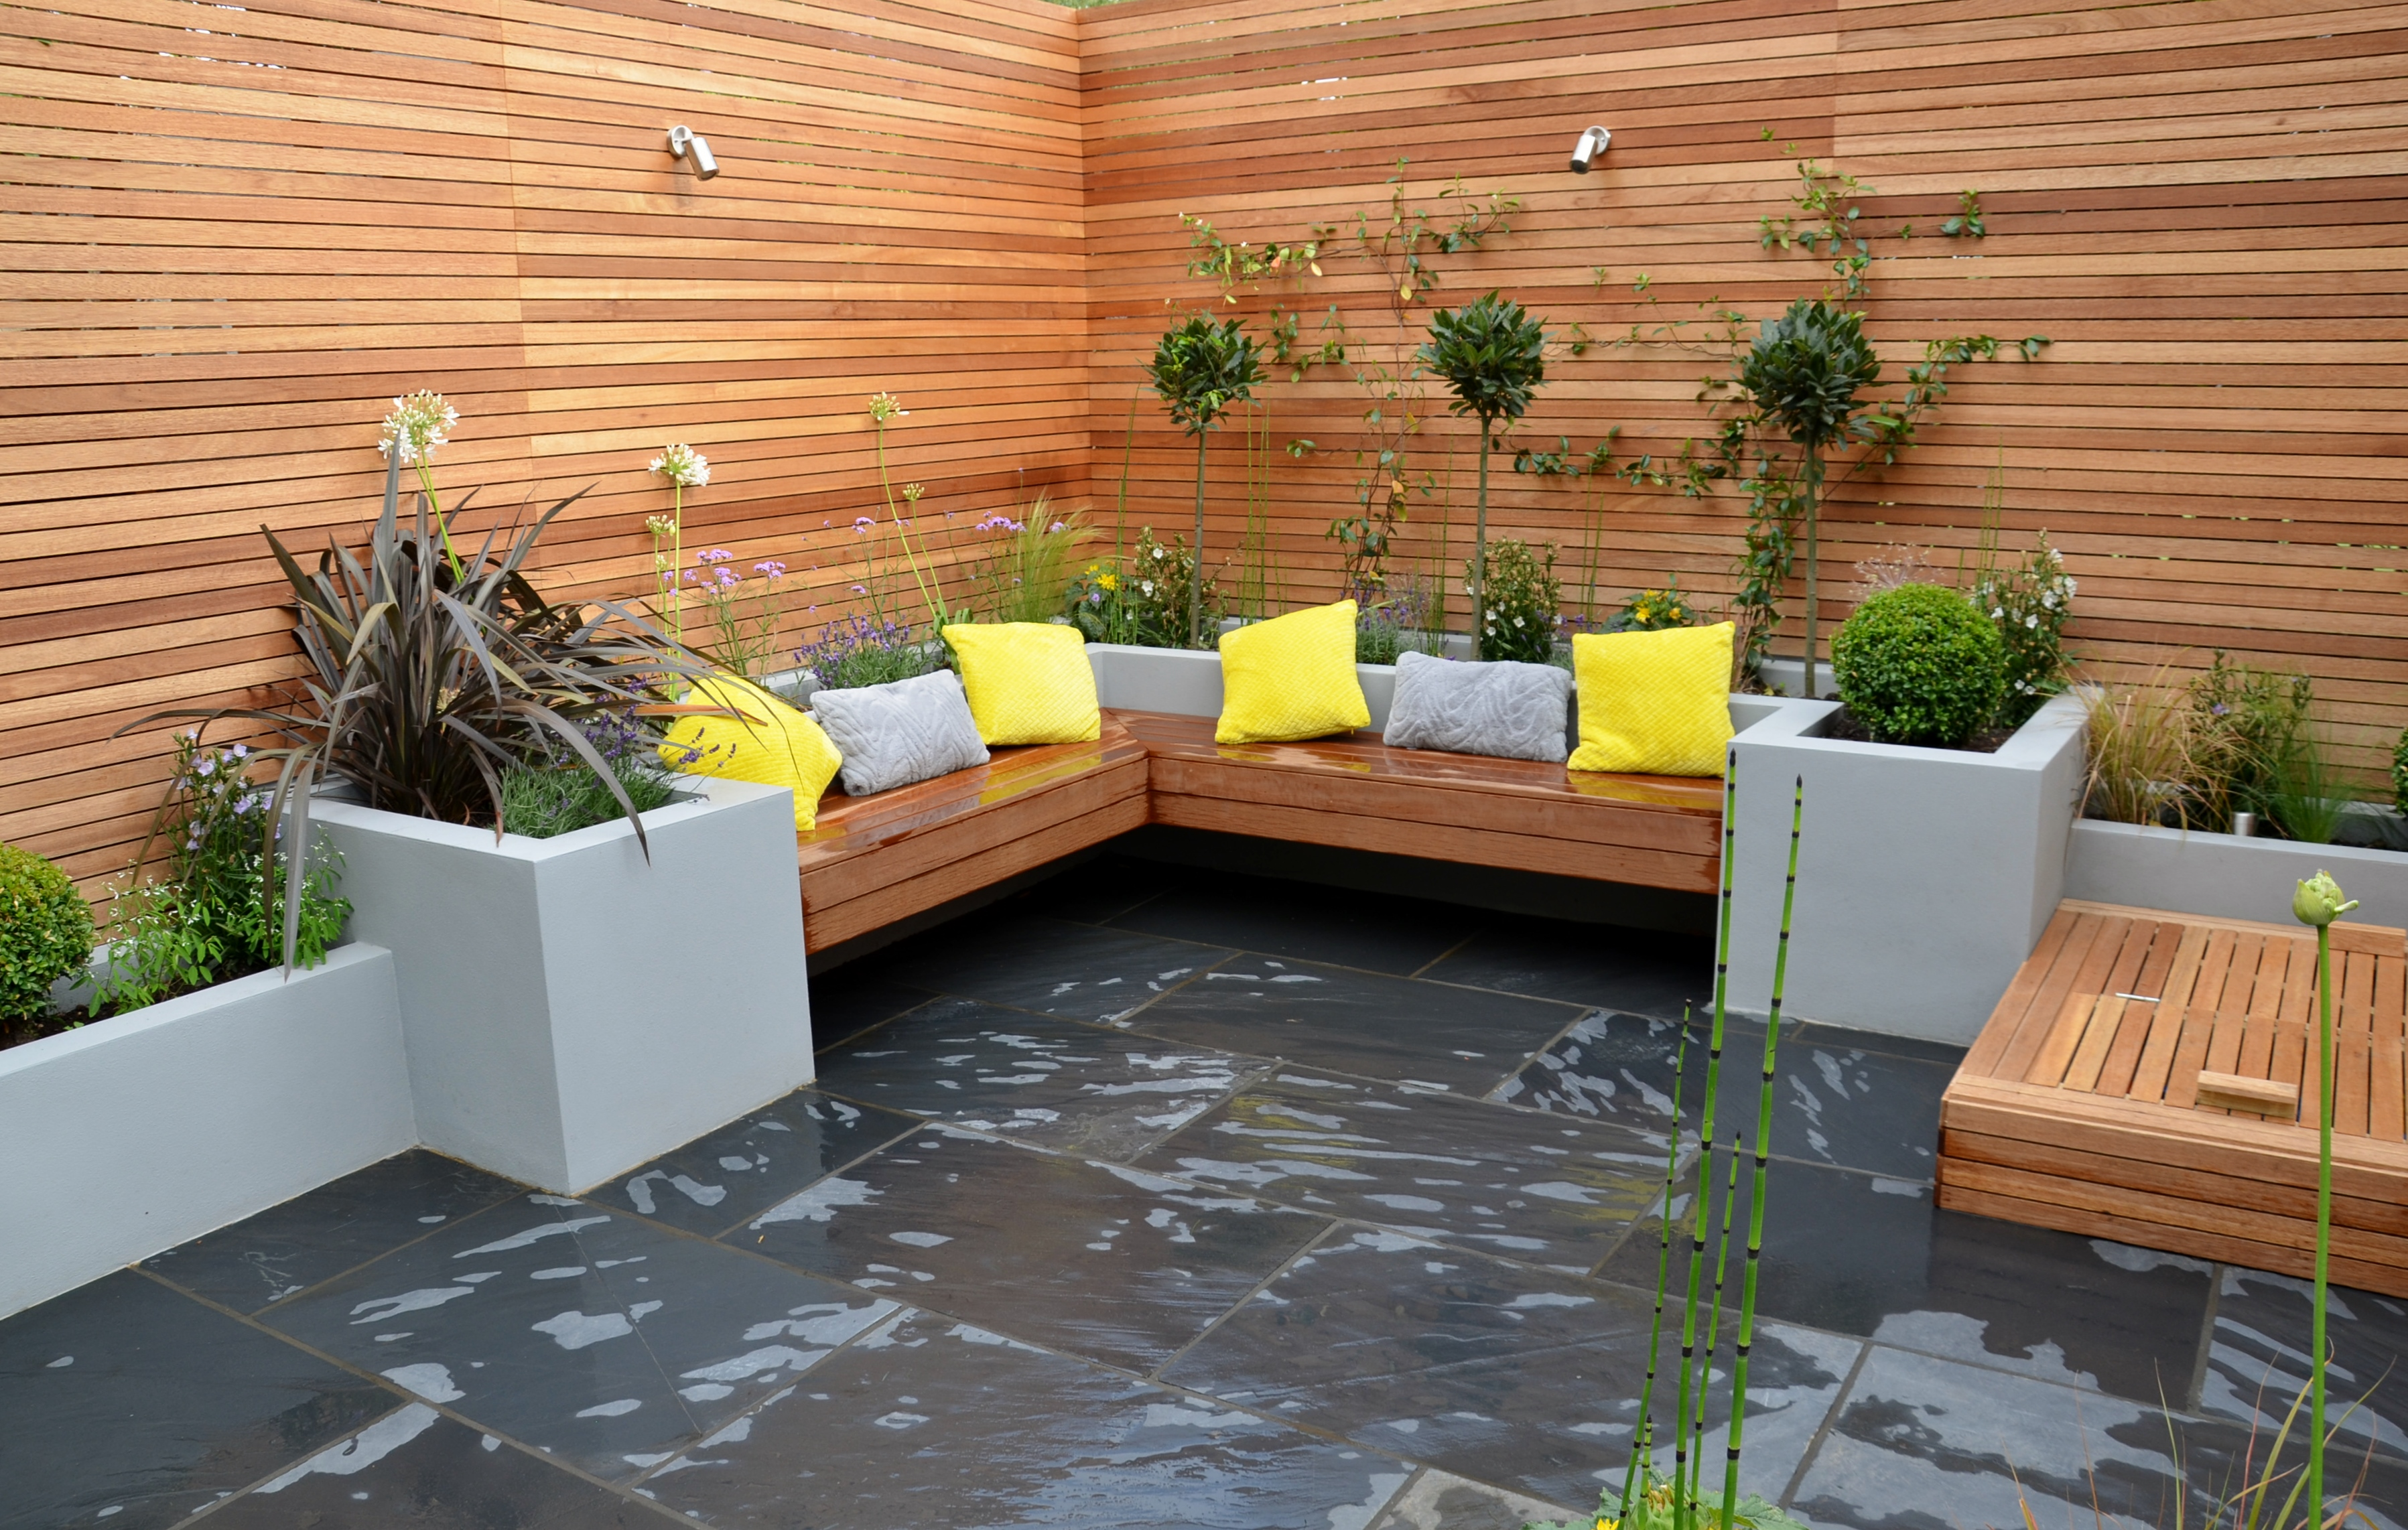 modern garden design raised plaster beds hardwood screen trellis fence bespoke storage stockwell west norwood tulse hill Top Result 50 Awesome Modern Outdoor Fireplace Picture 2018 Gst3